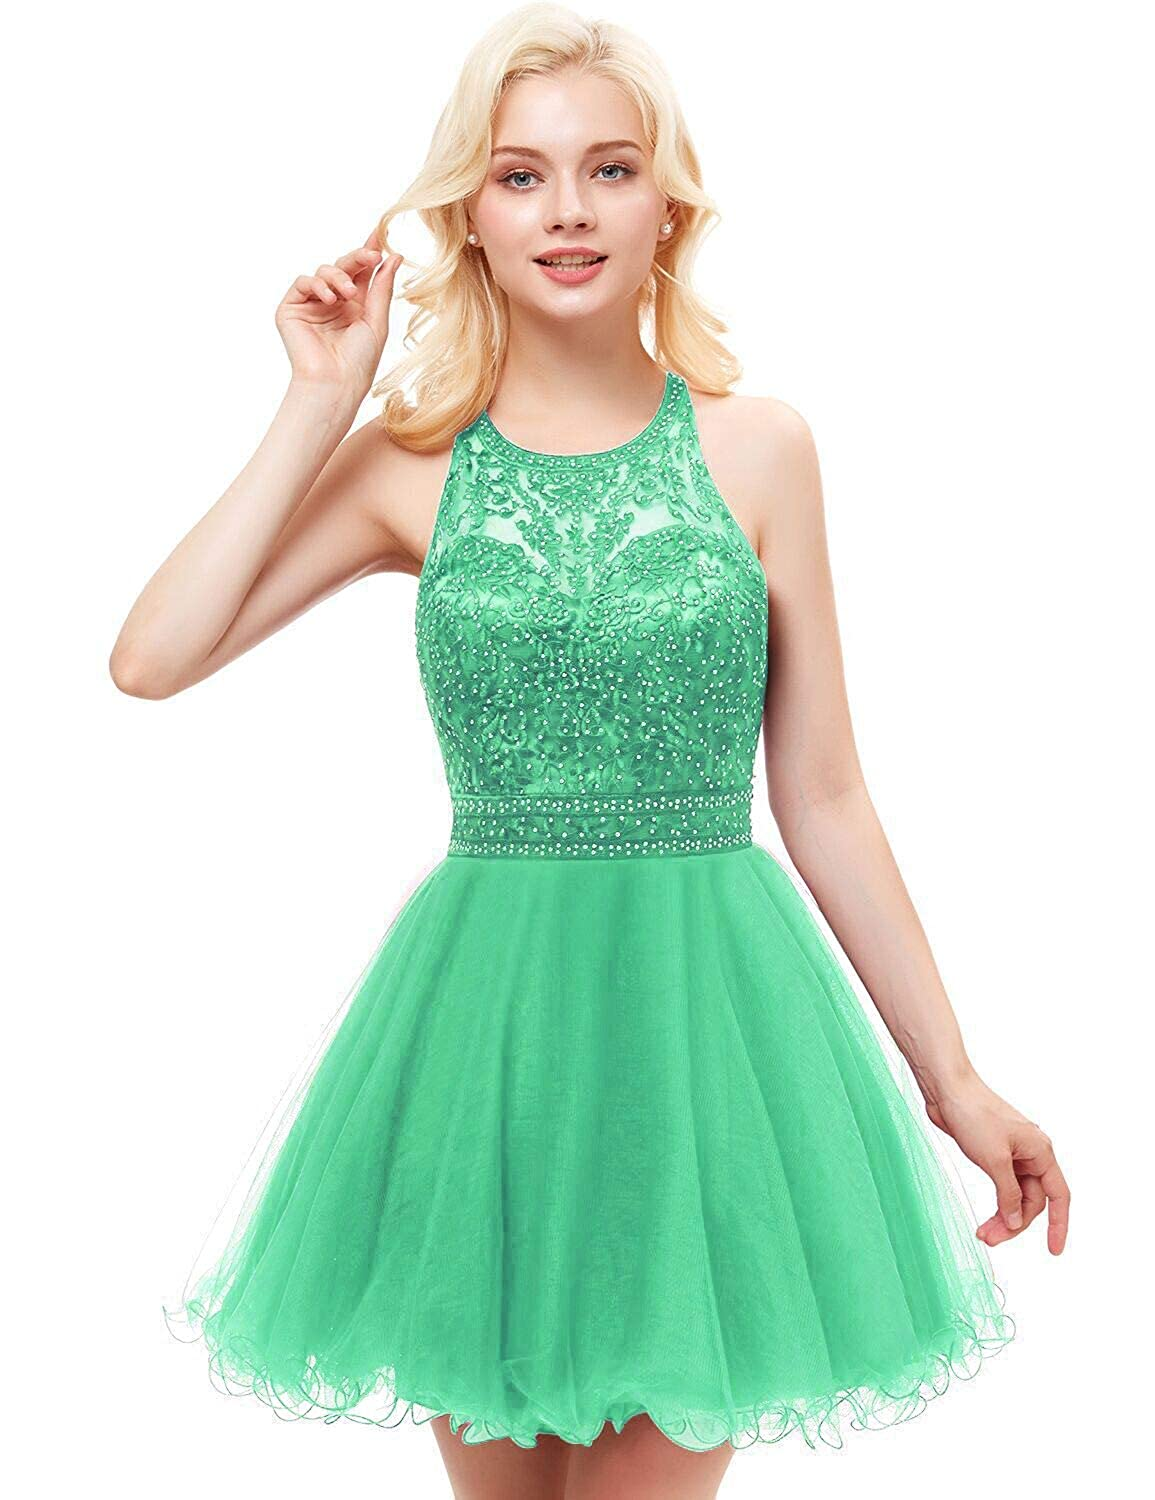 00 Mint Green Vimans Women's Short Tulle Homecoming Dresses 2018 Knee Length Lace Prom Gowns Dress448